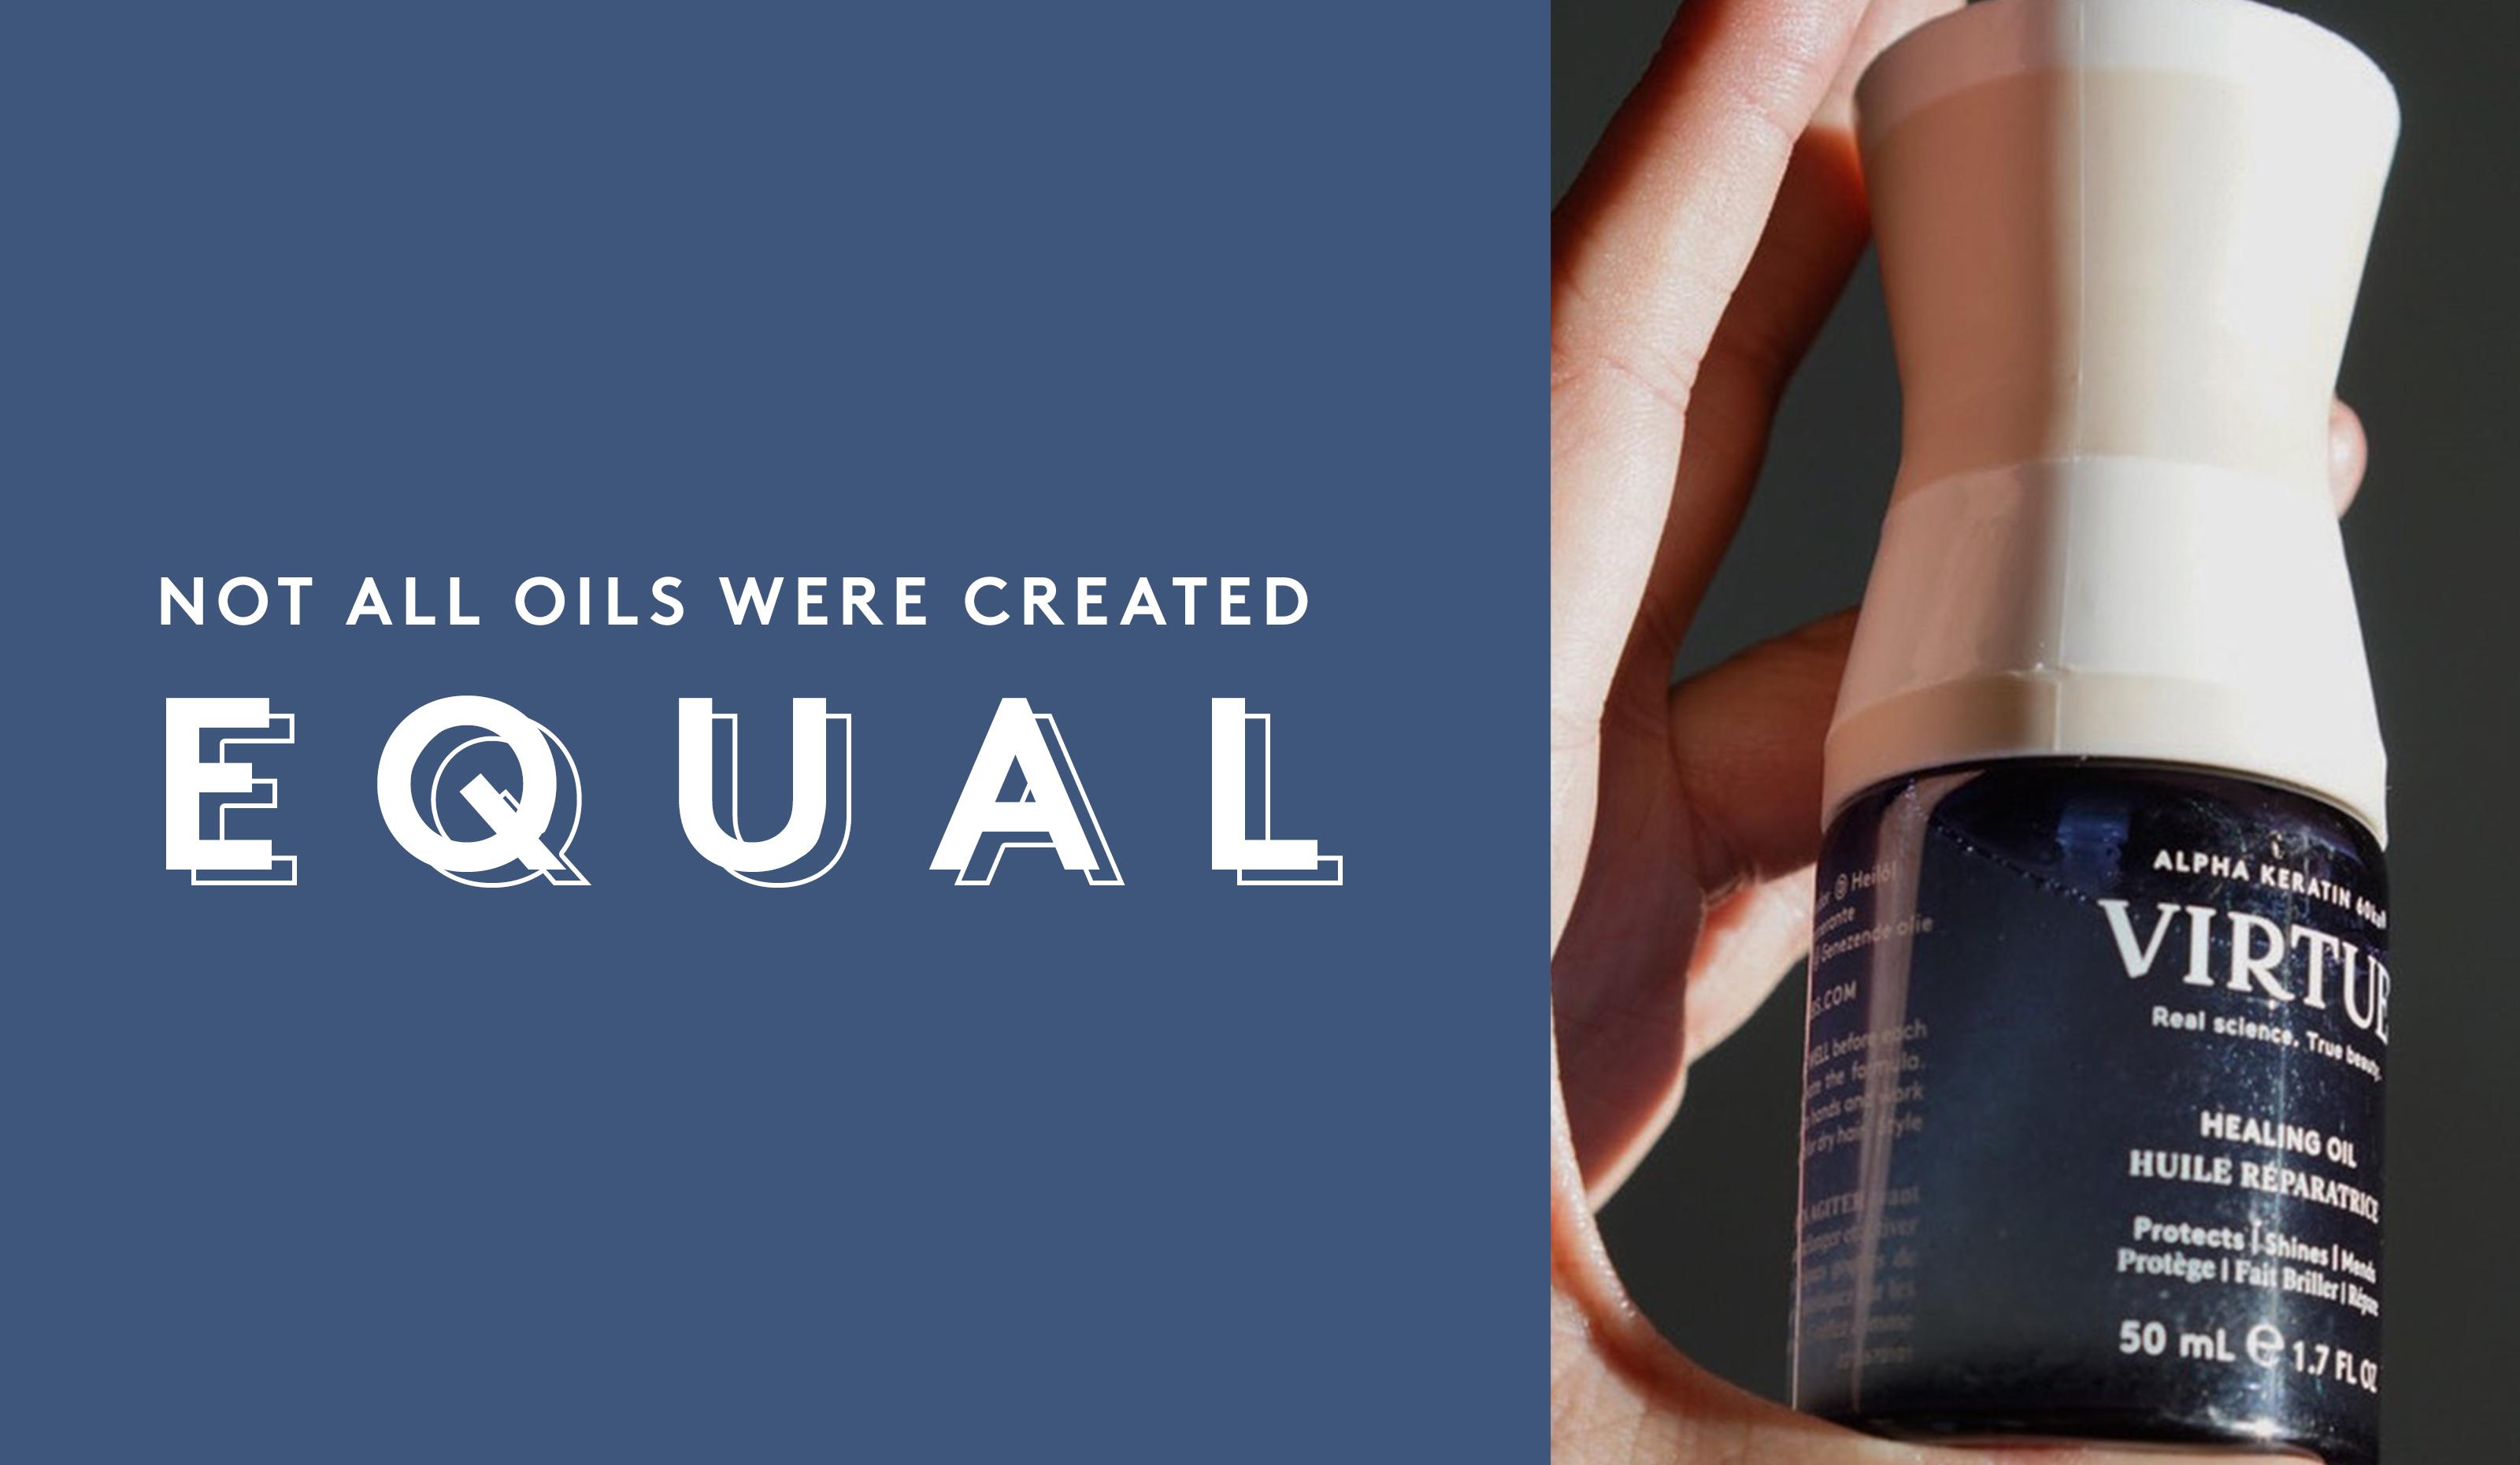 Not All Oils Were Created Equal